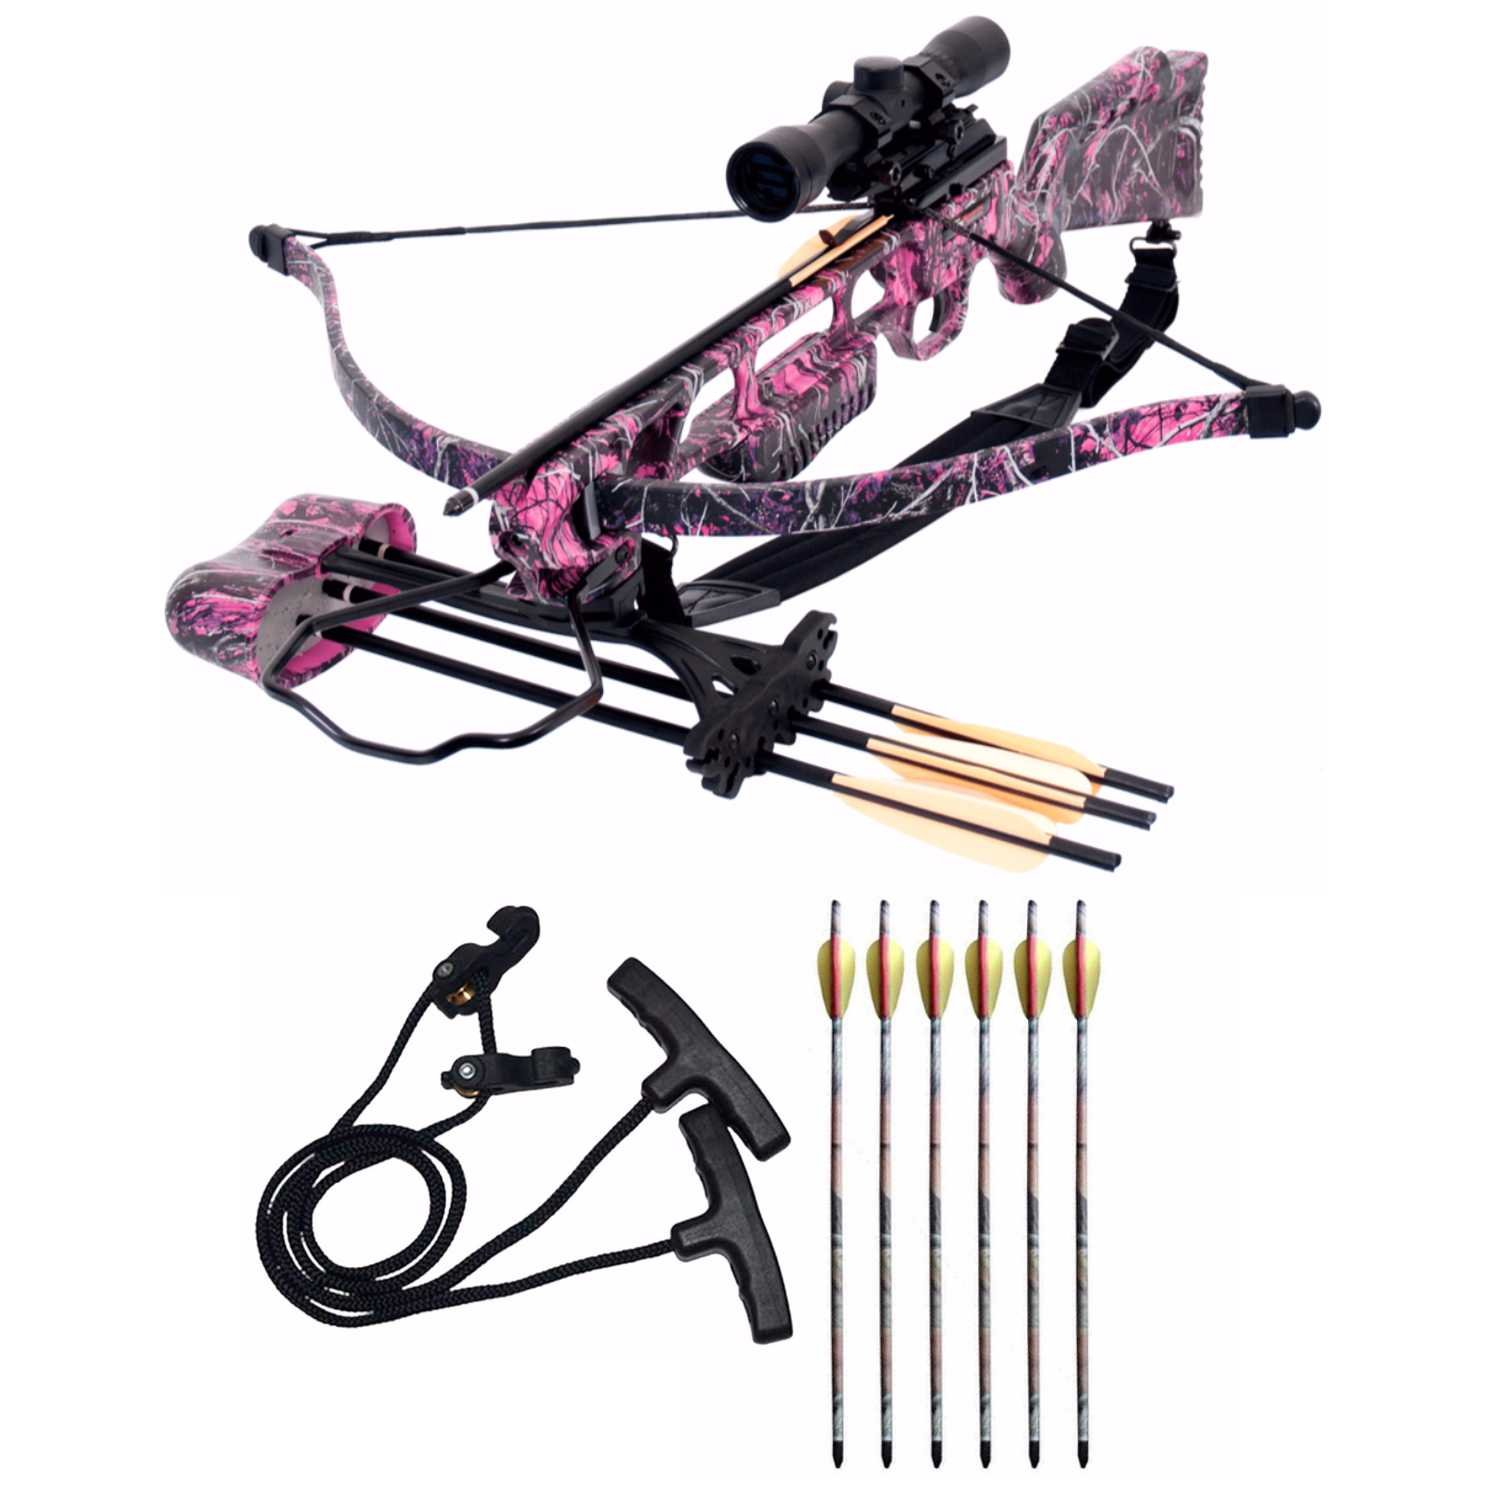 SA Sports Fever Muddy Girl Recurve Crossbow (Pink) w. Extra Bolts & Rope Cocking Device (Increases Accuracy)